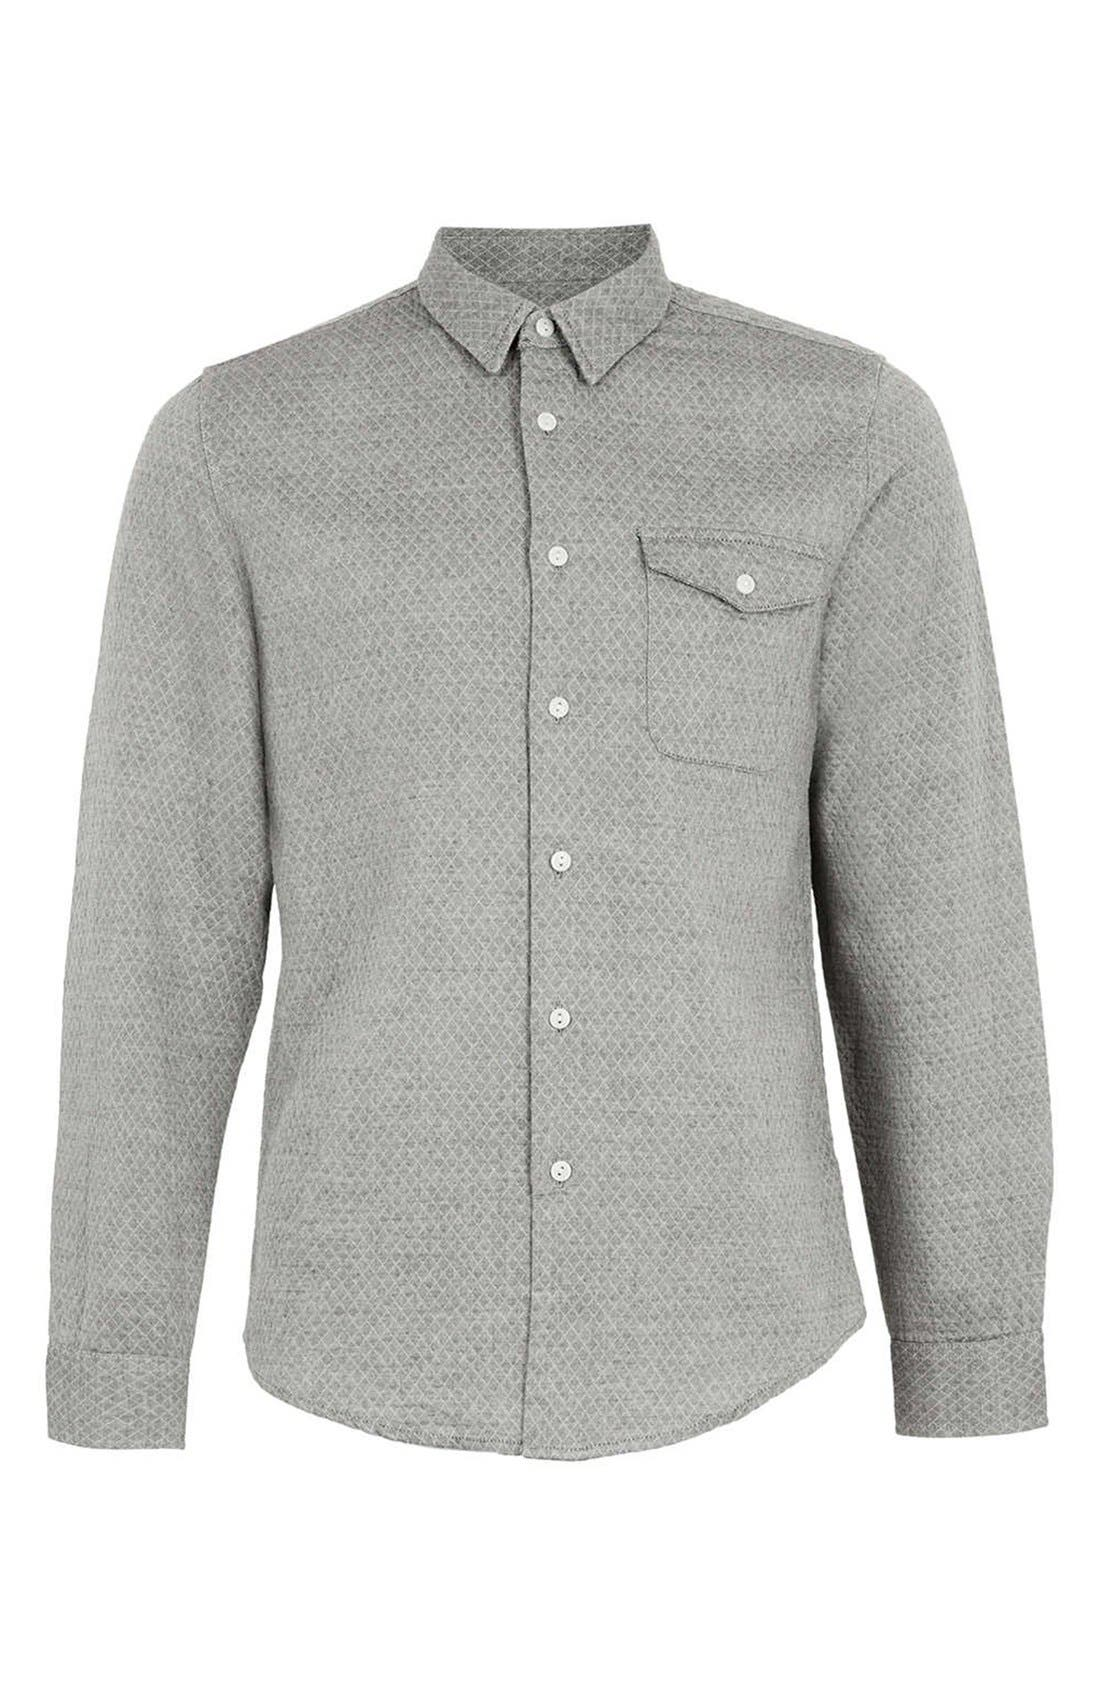 Alternate Image 1 Selected - Topman Quilted Shirt